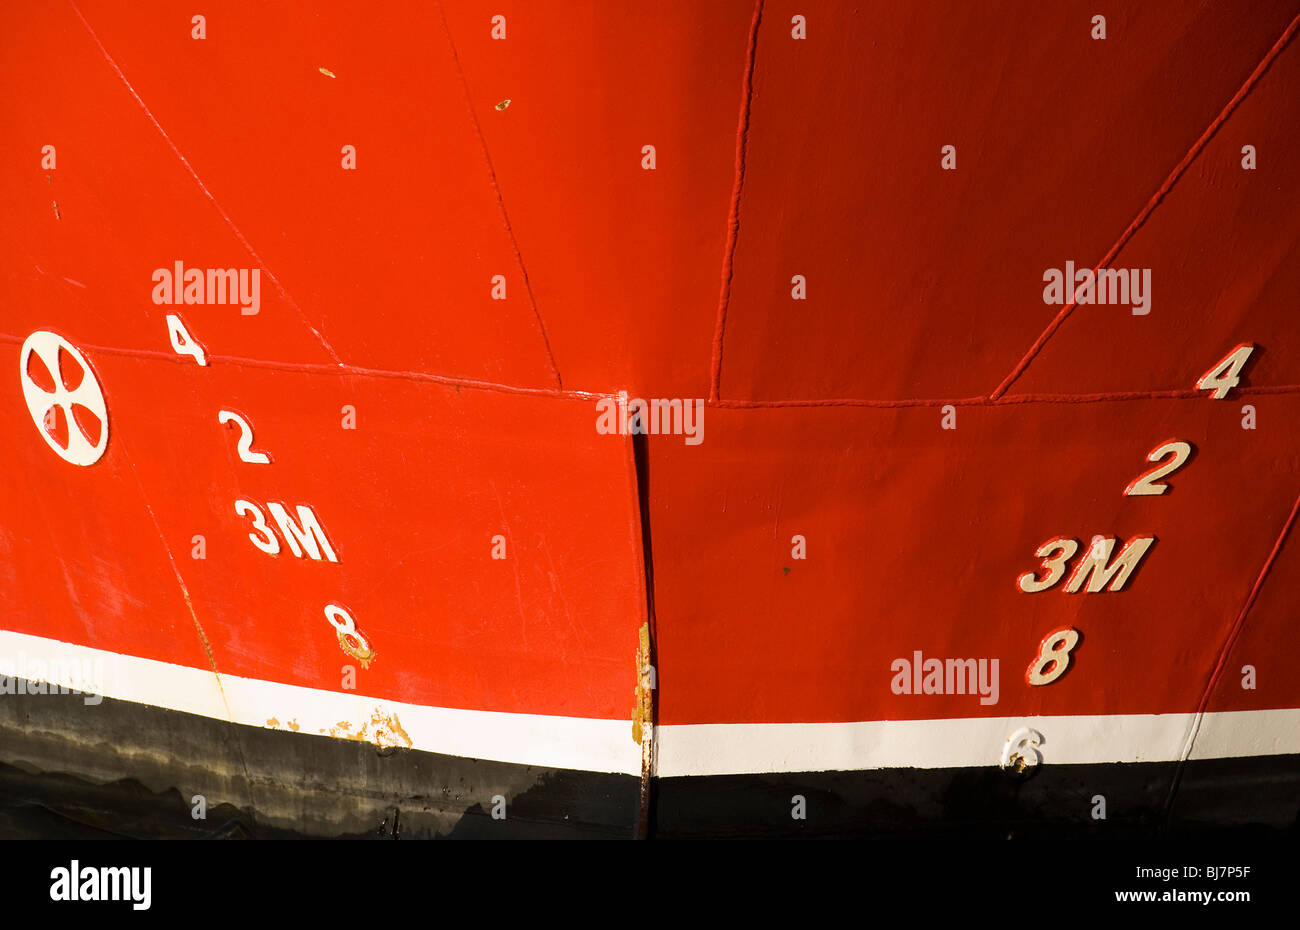 Plomsoll marks on ships bow showing the draft - Stock Image